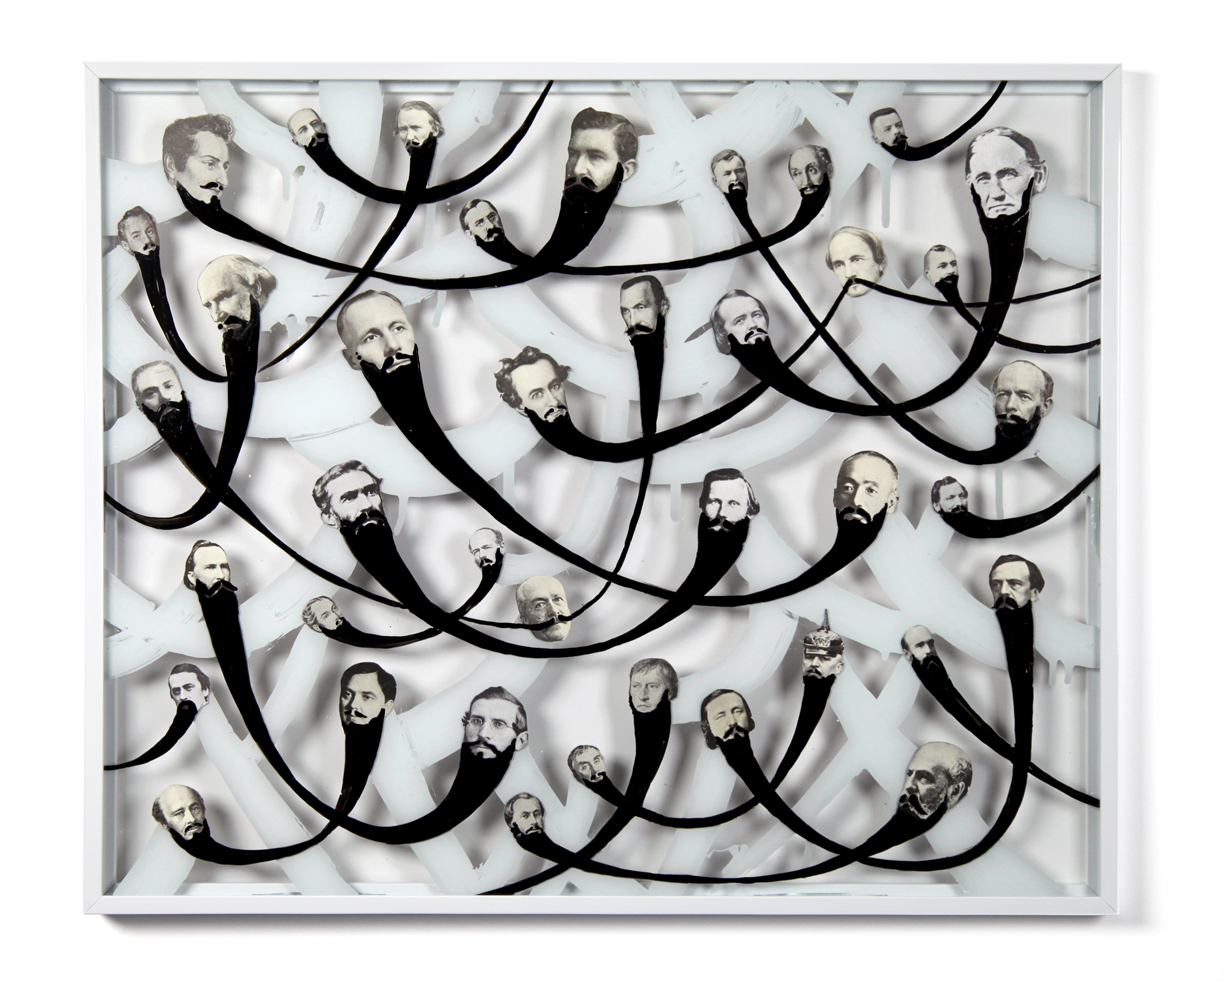 Barbarians 2 , 2013, enamel, silver nitrate and collage on glass